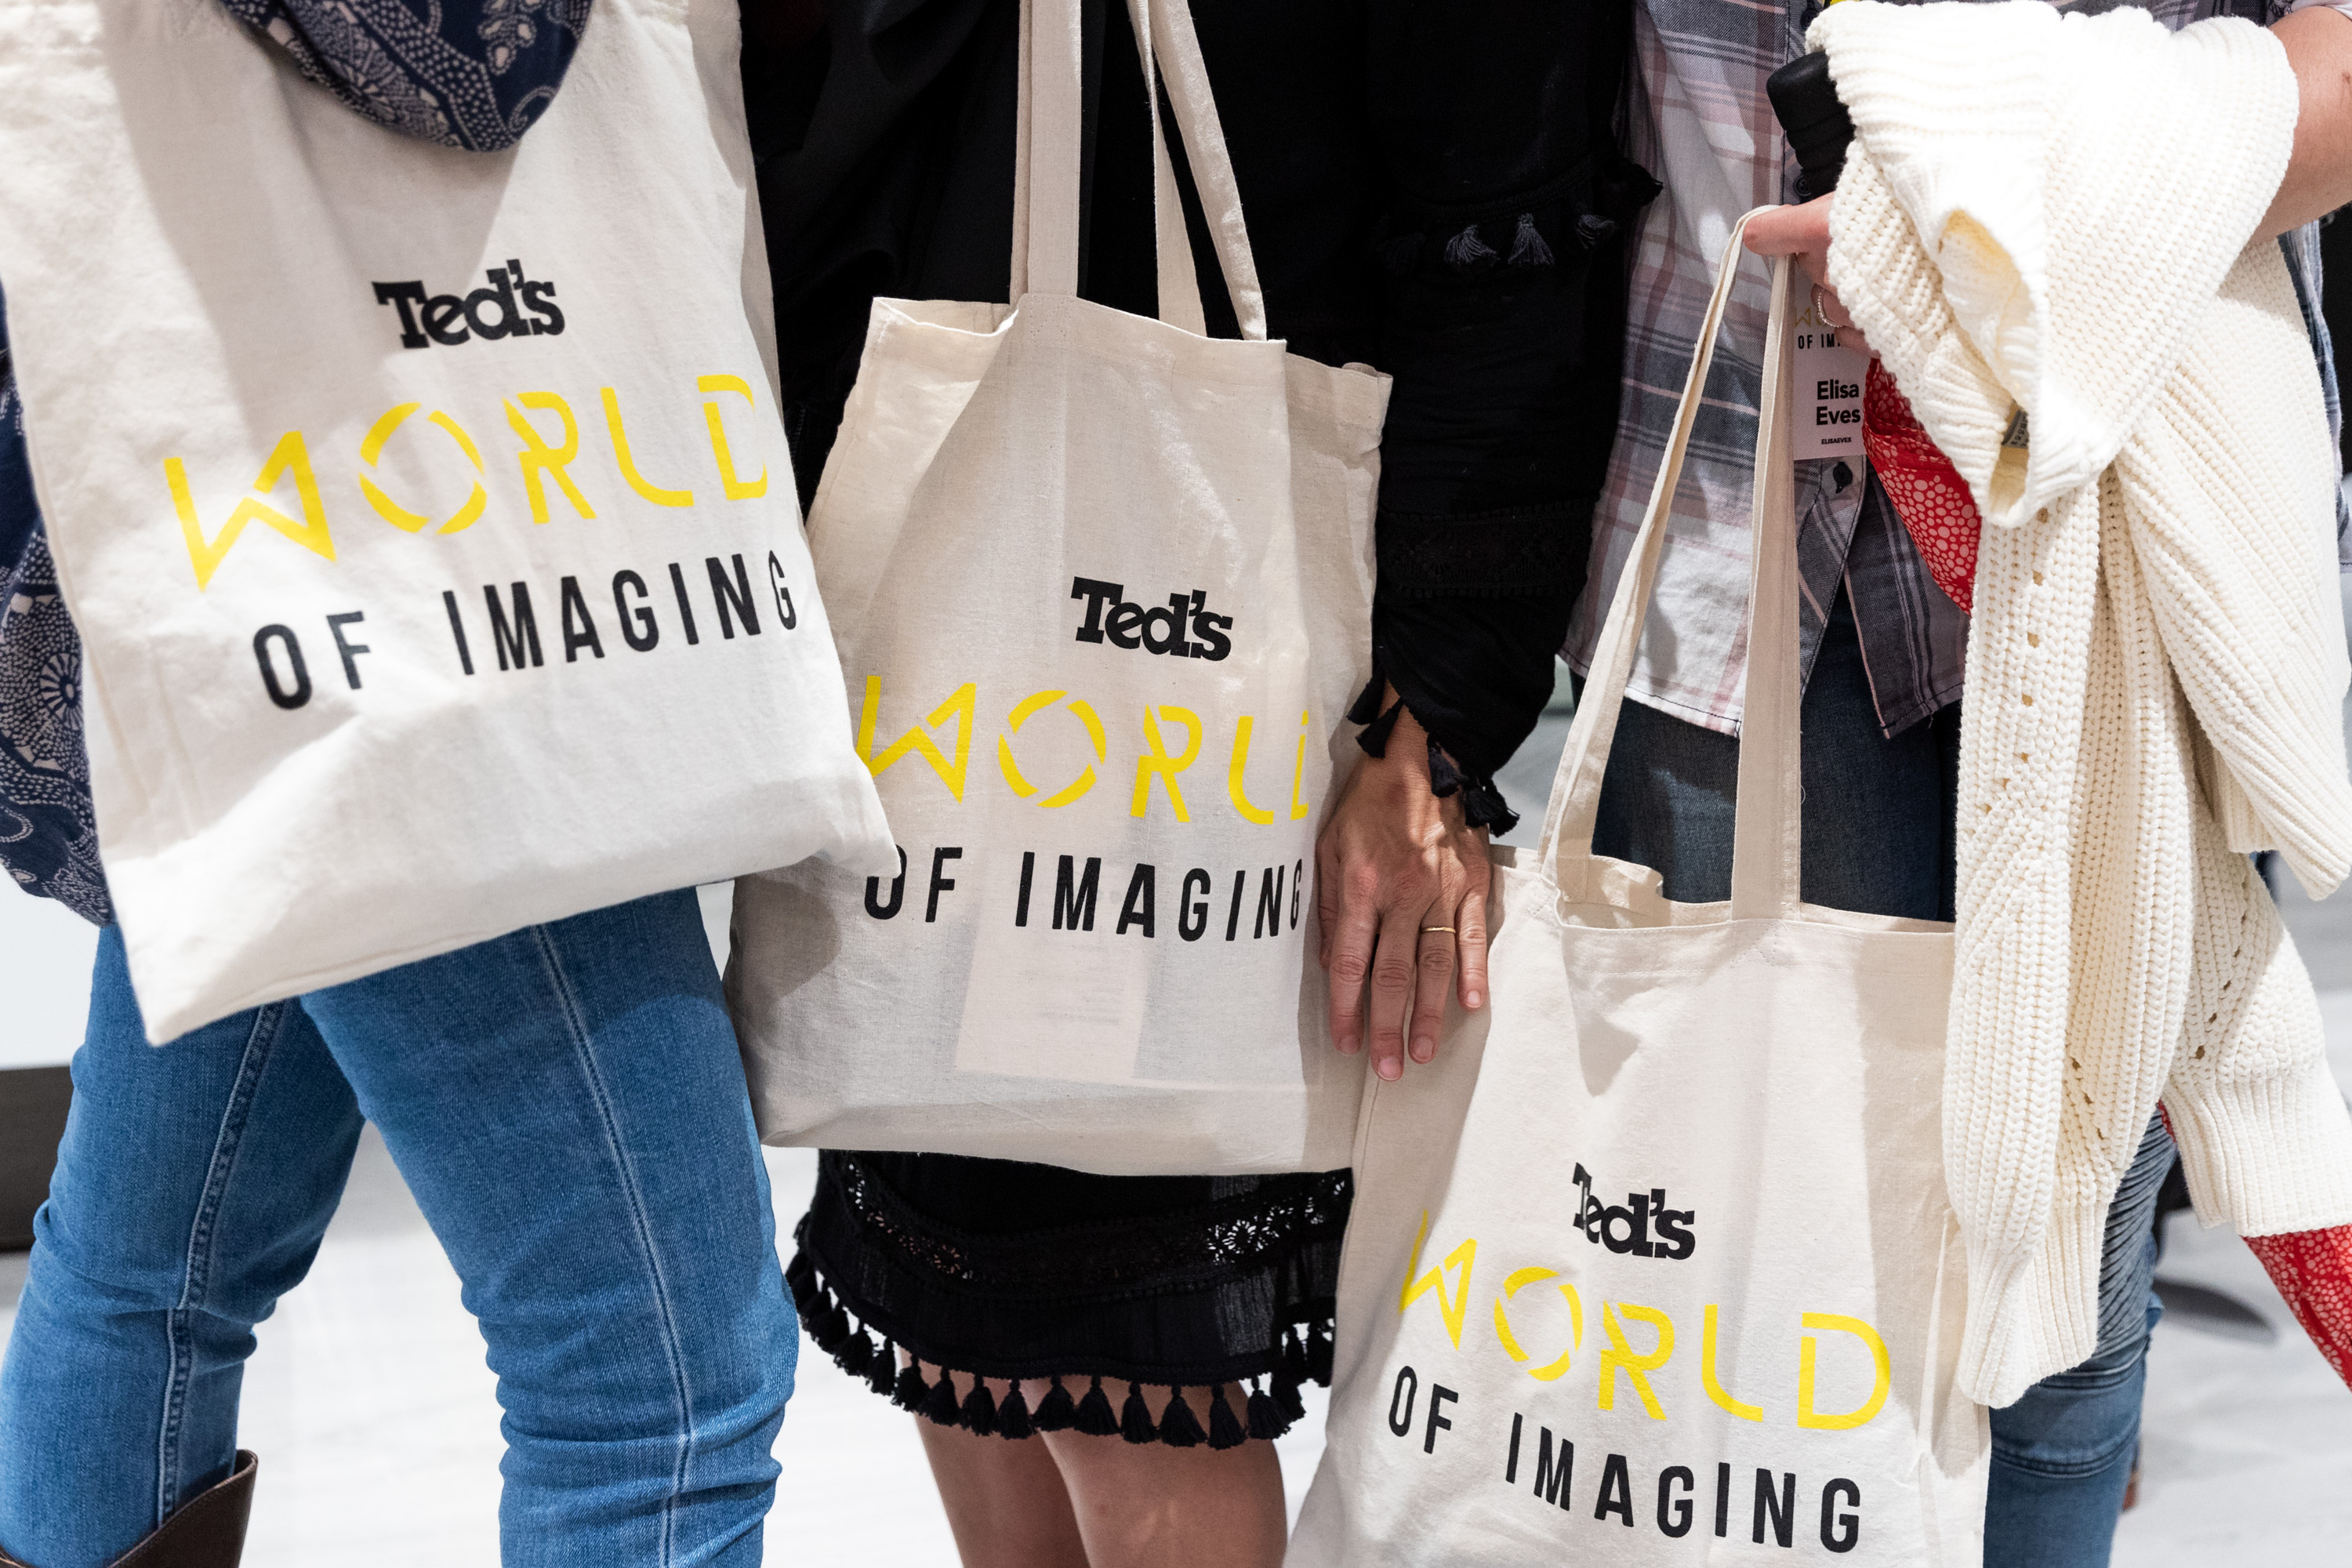 Ted's World of Imagining Goody Bags